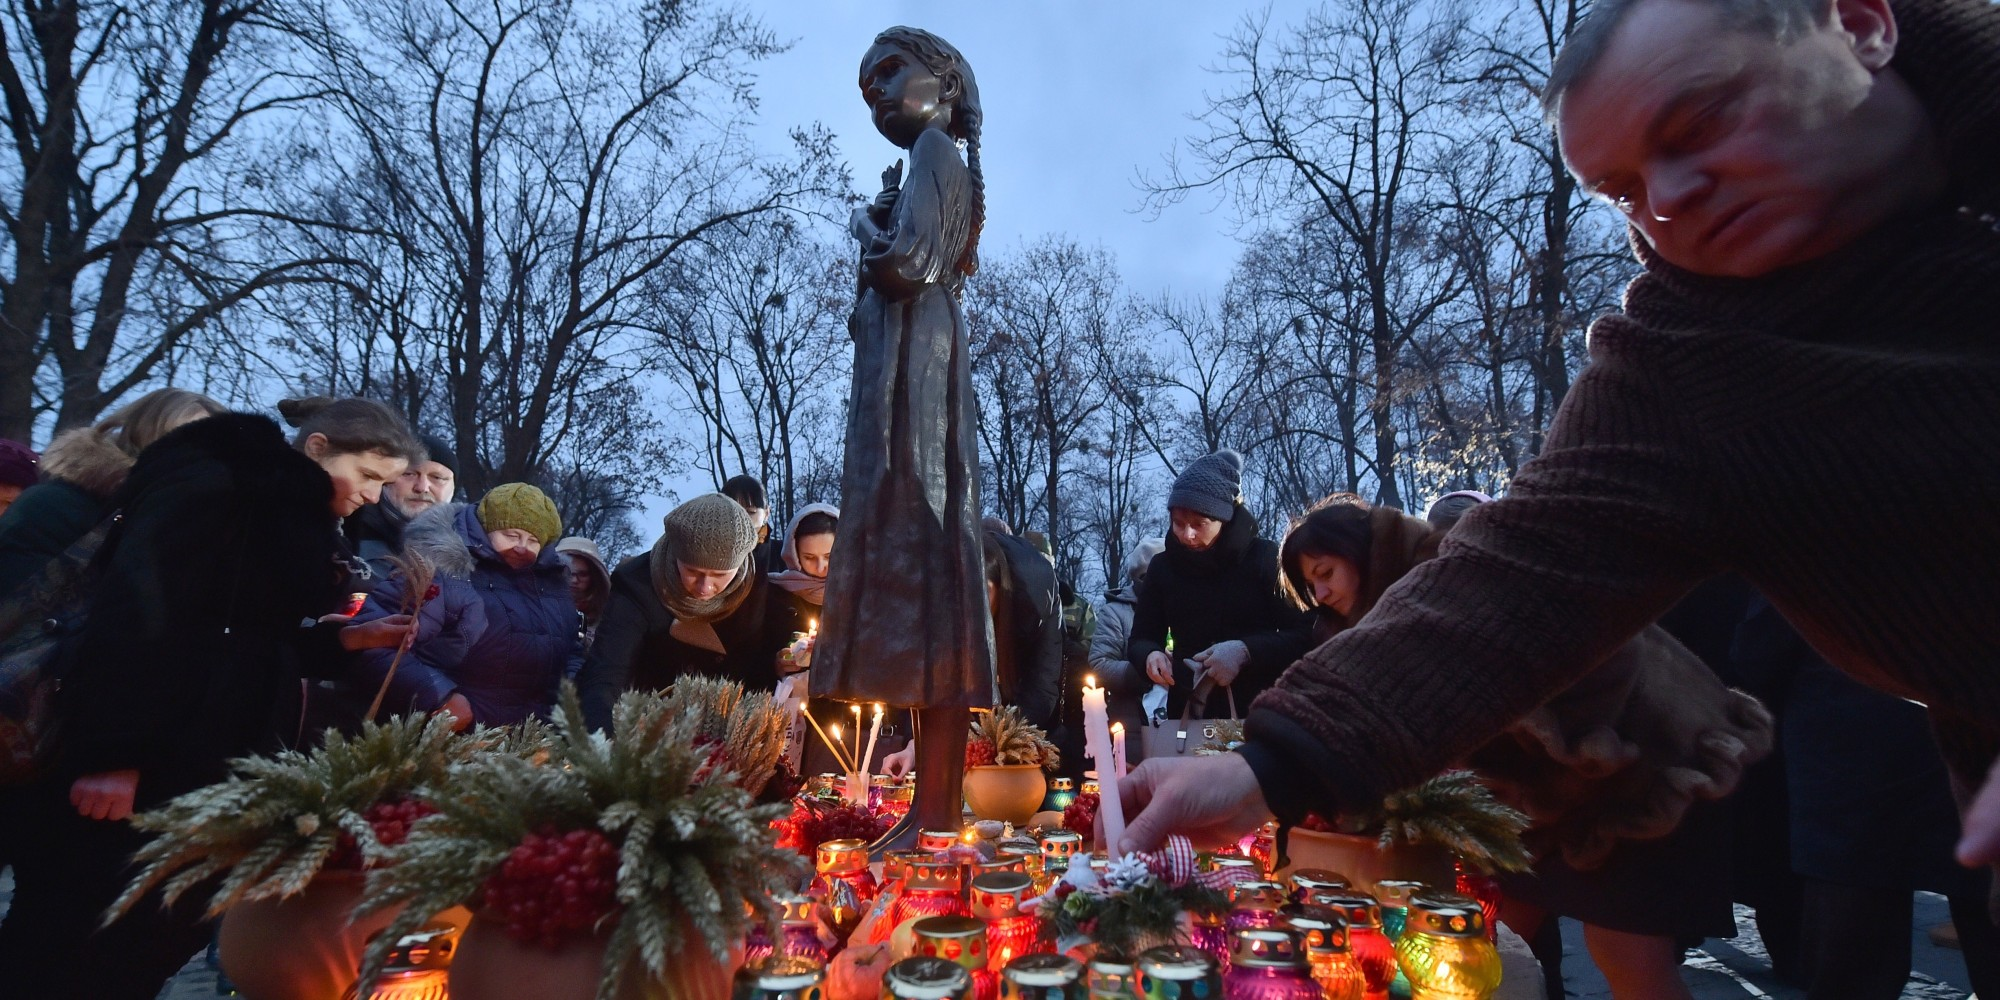 But HOLODOMOR, came up with the help of Mr 94